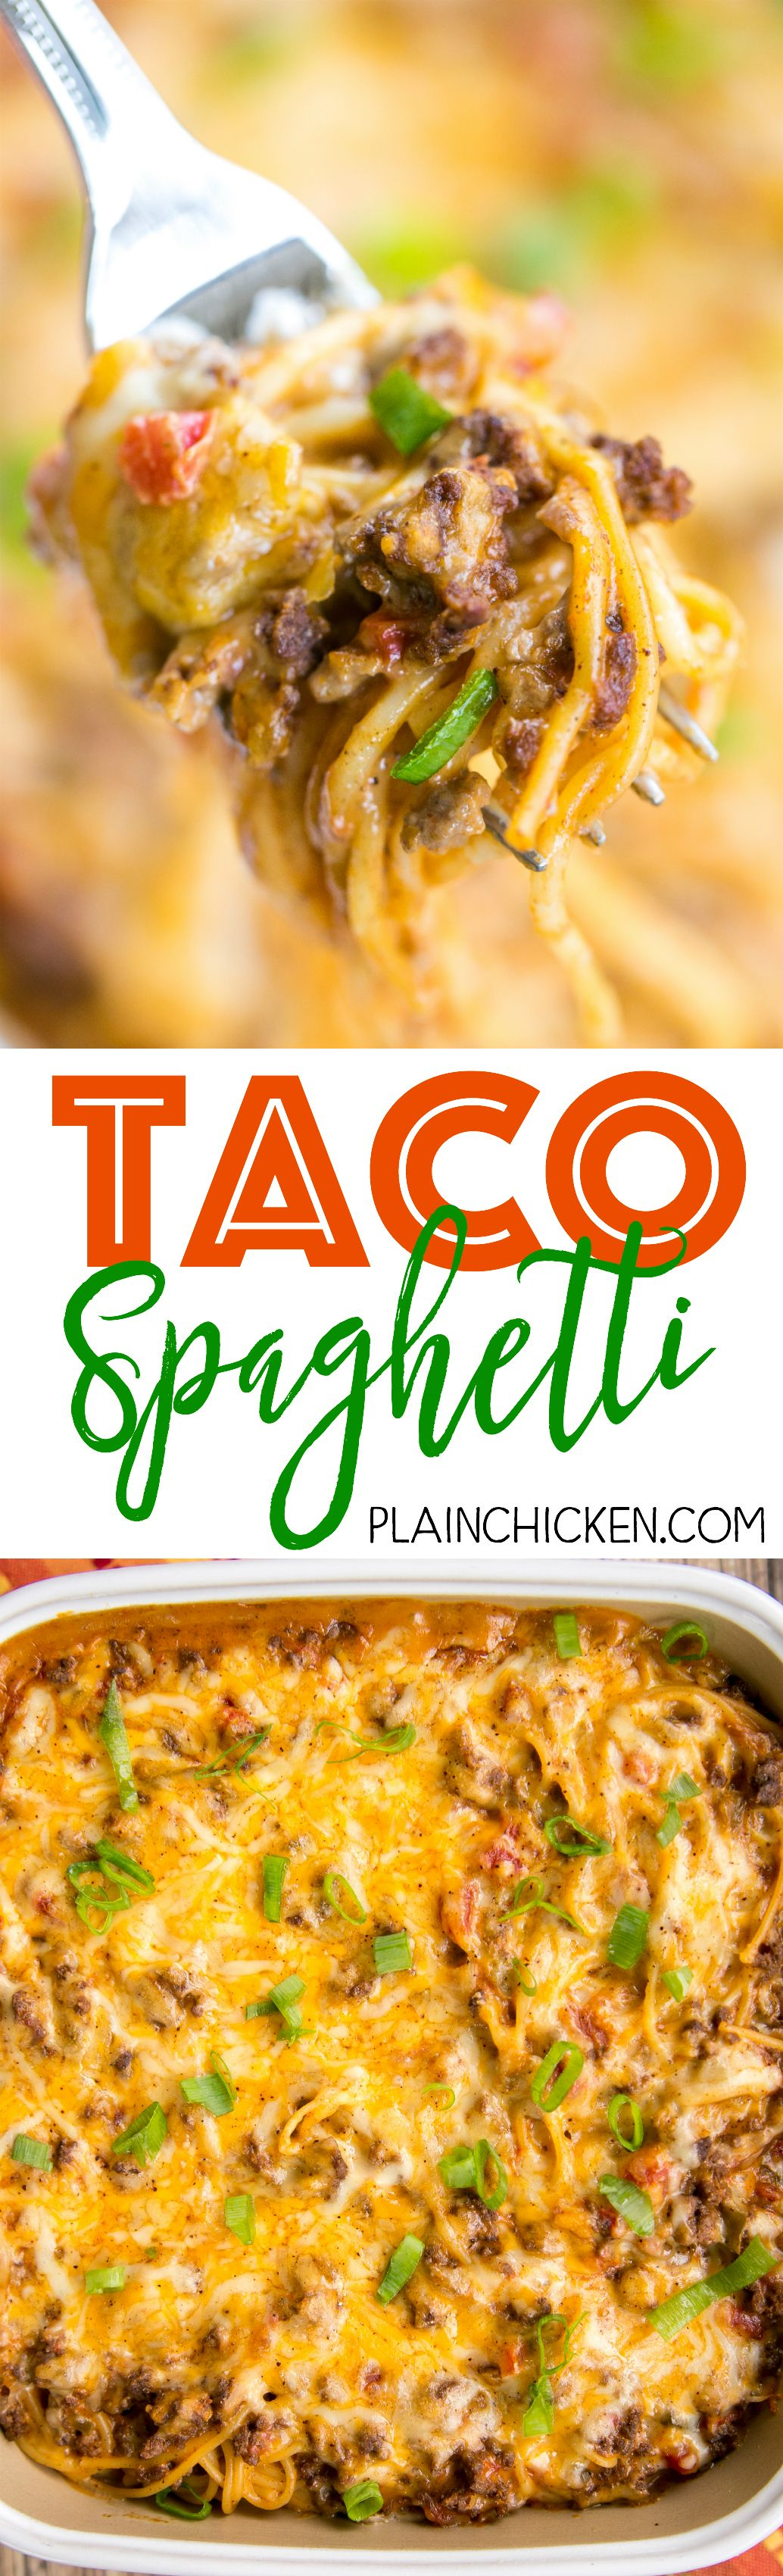 Taco Spaghetti – THE BEST! We ate this three days in a row! Ready in 30 minutes!! Taco meat, velveeta, diced tomatoes with green